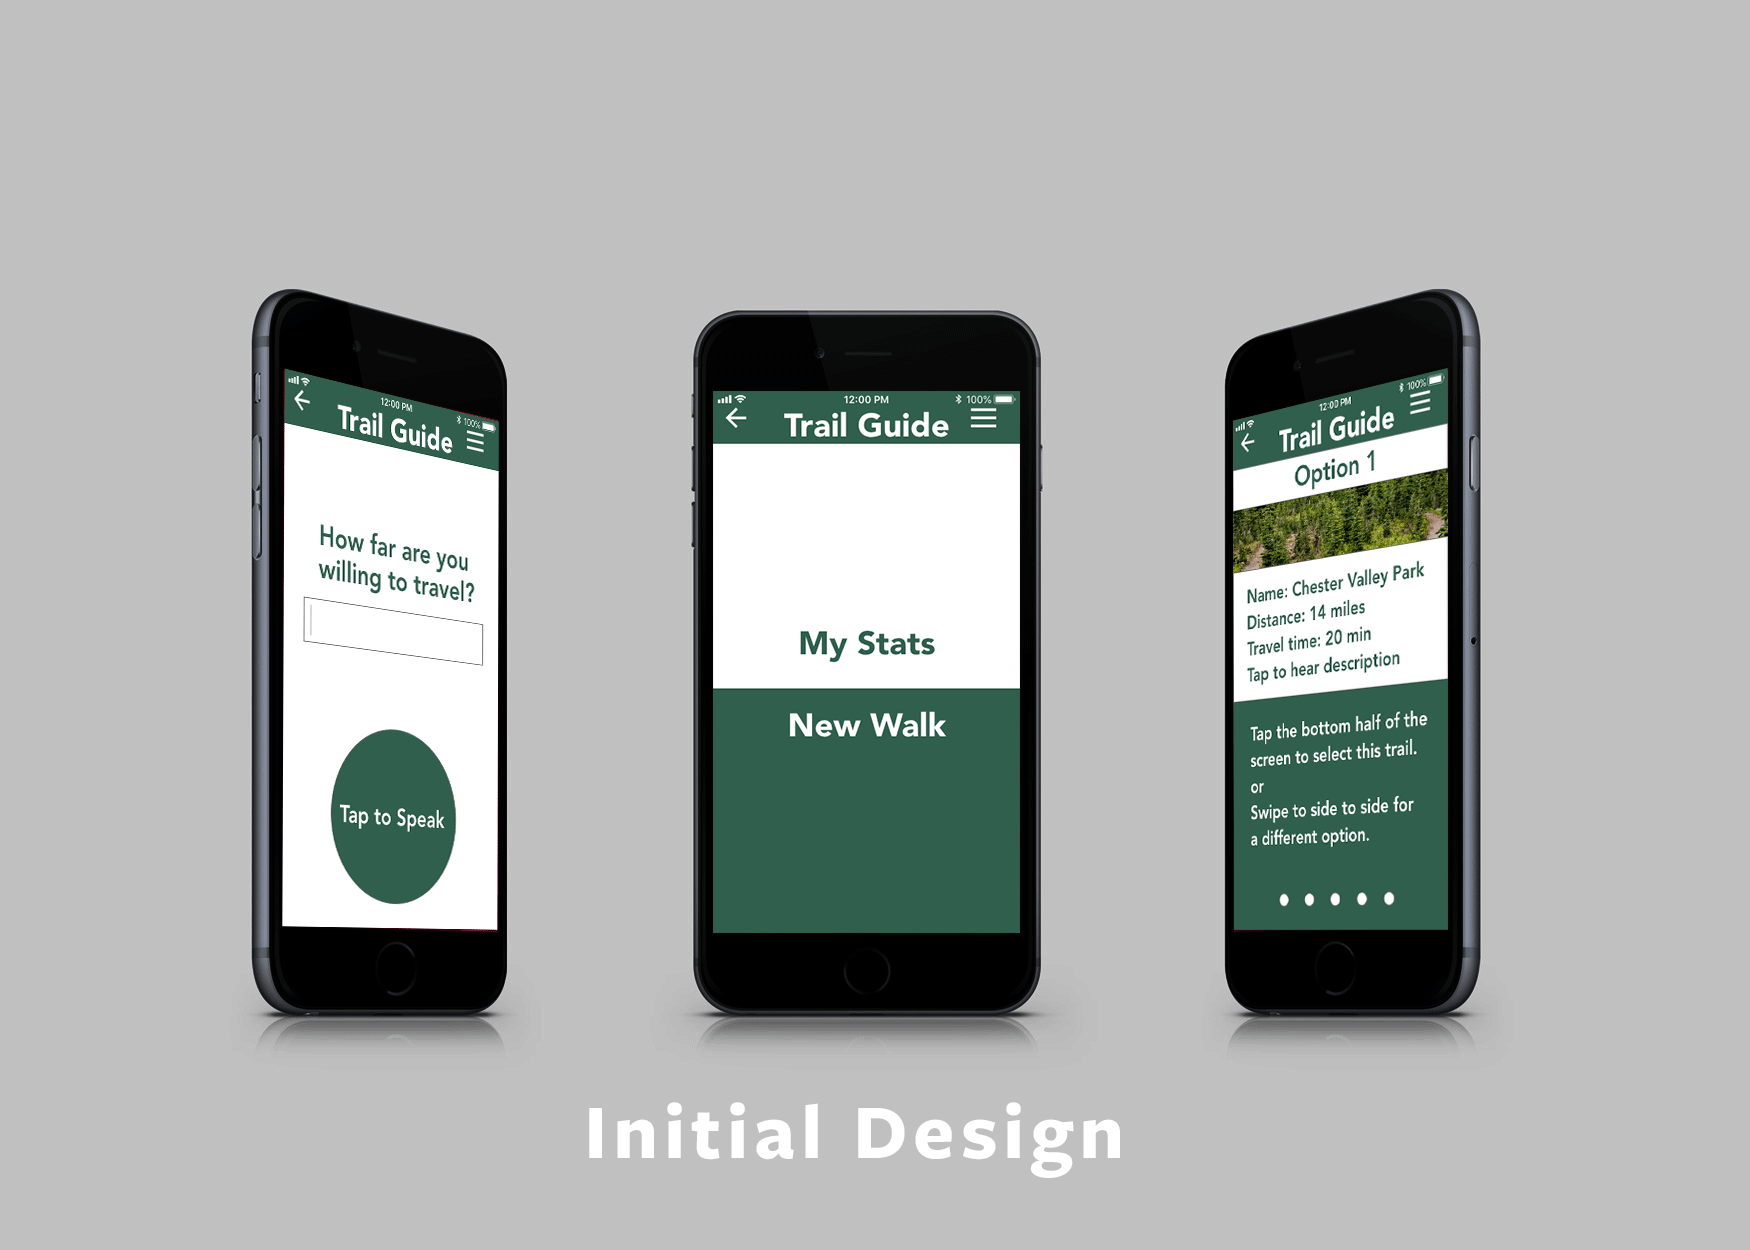 initial design of the app when we presented it to the judges